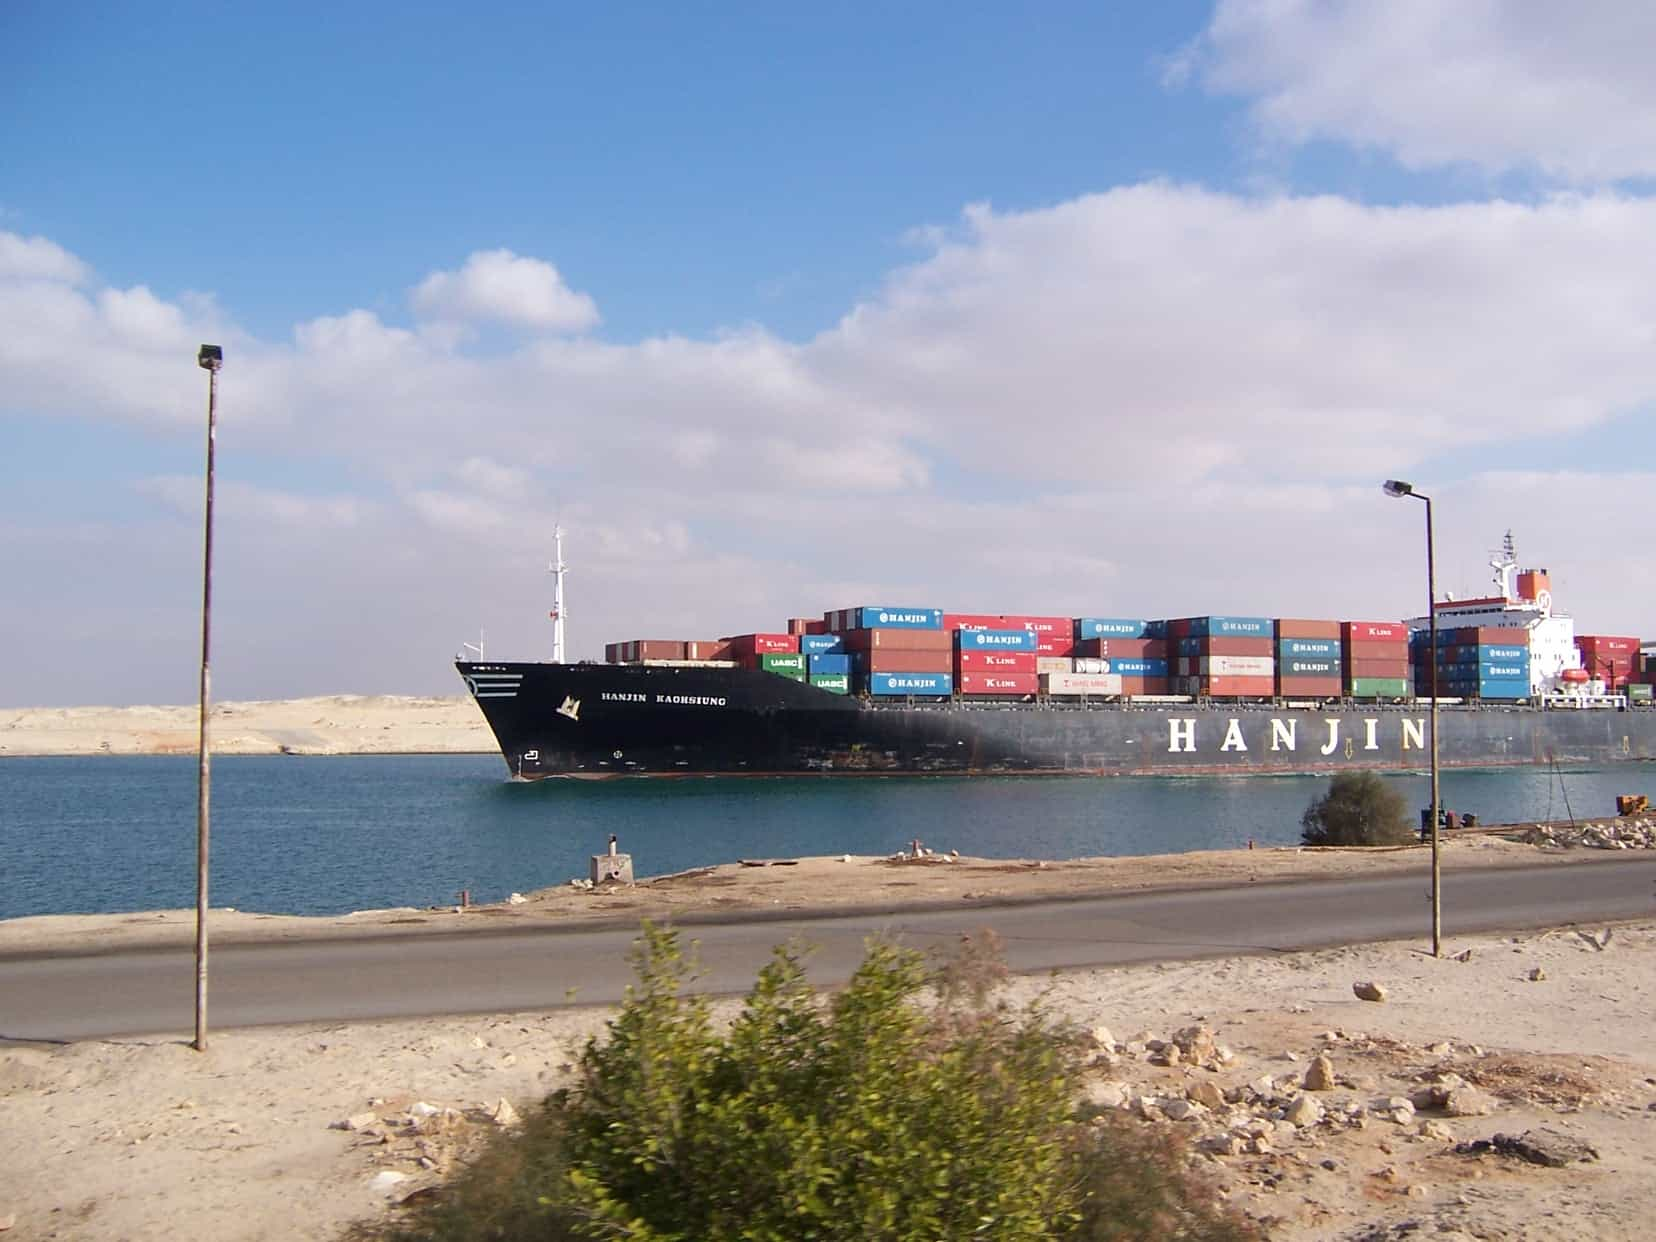 Panama Canal delay will benefit Suez